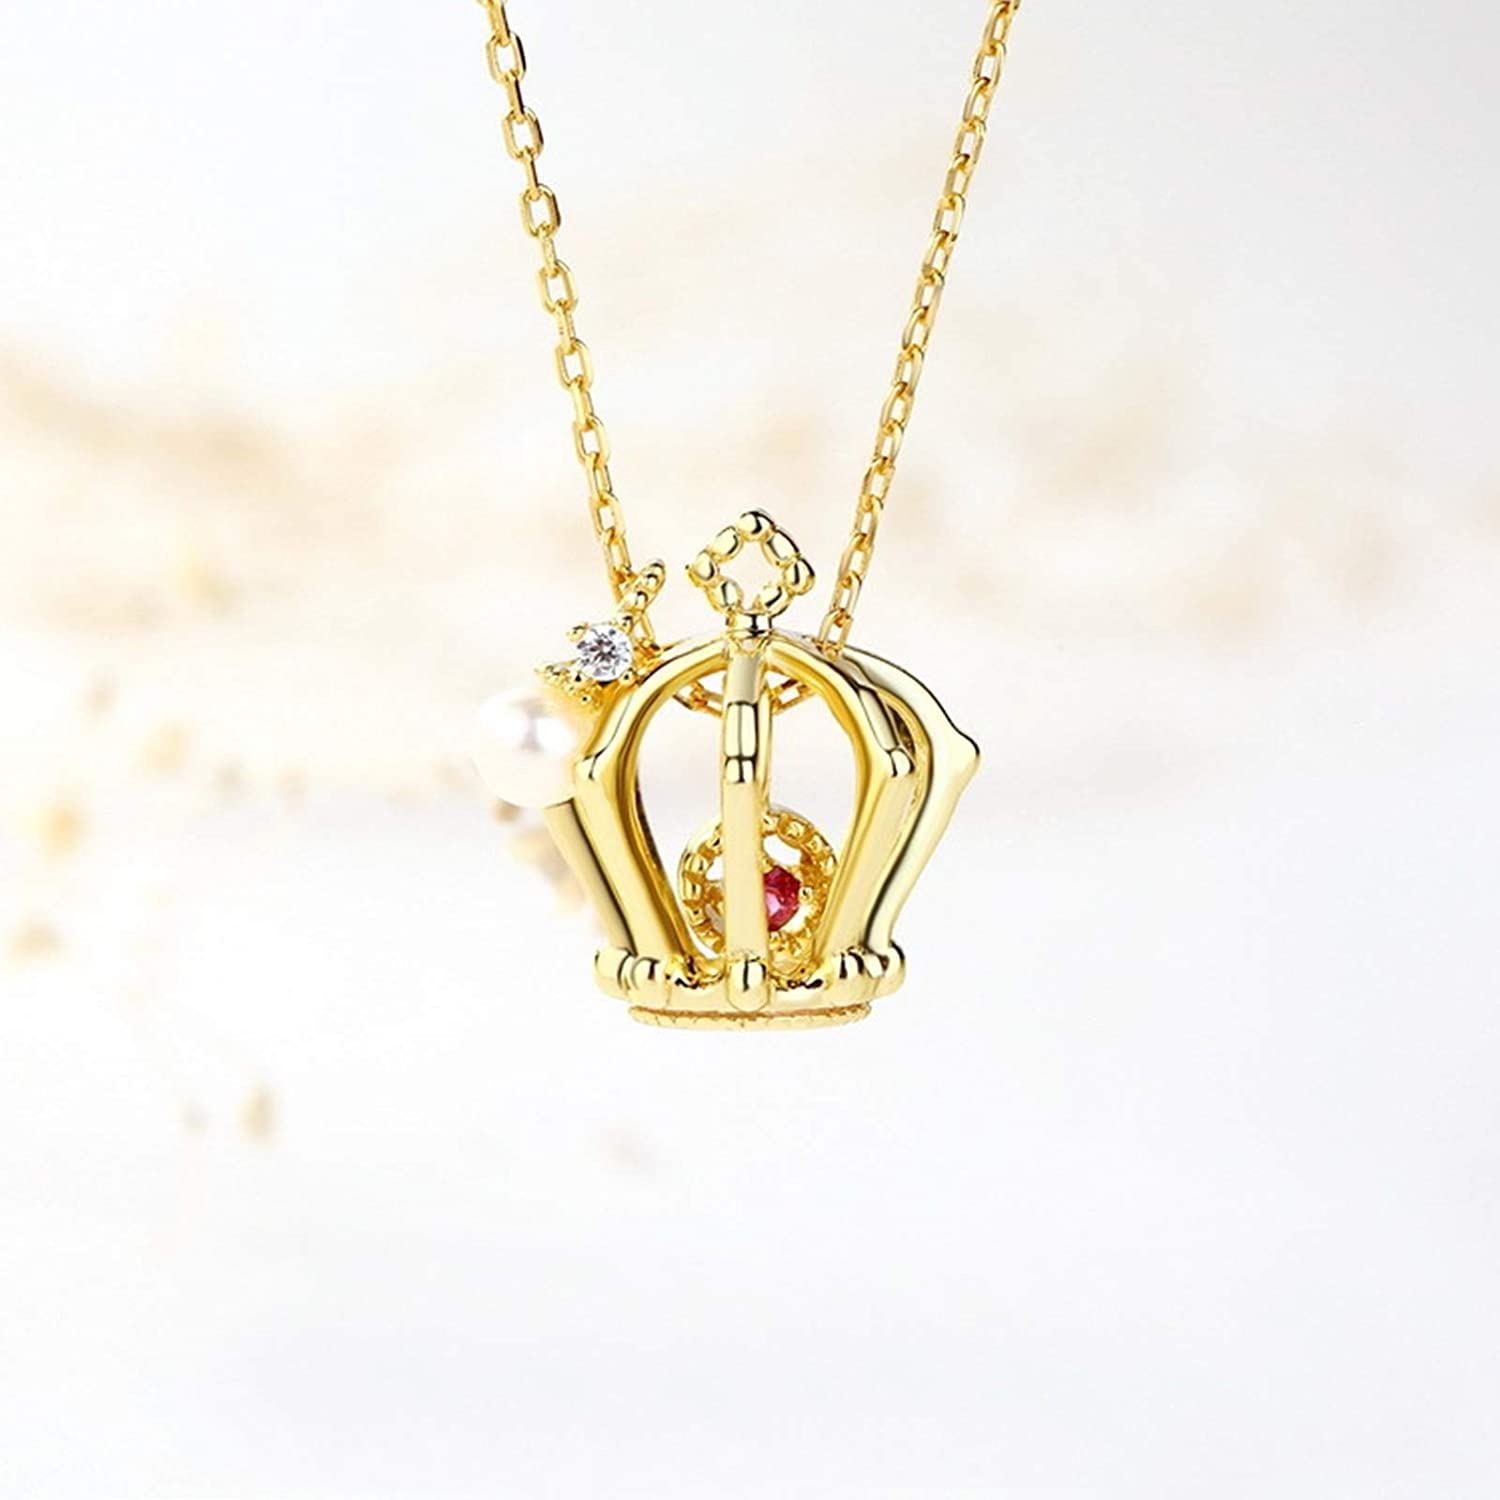 Epinki 925 Sterling Silver Necklace for Women Girls Gold Tourmaline Crown Pendant Necklace